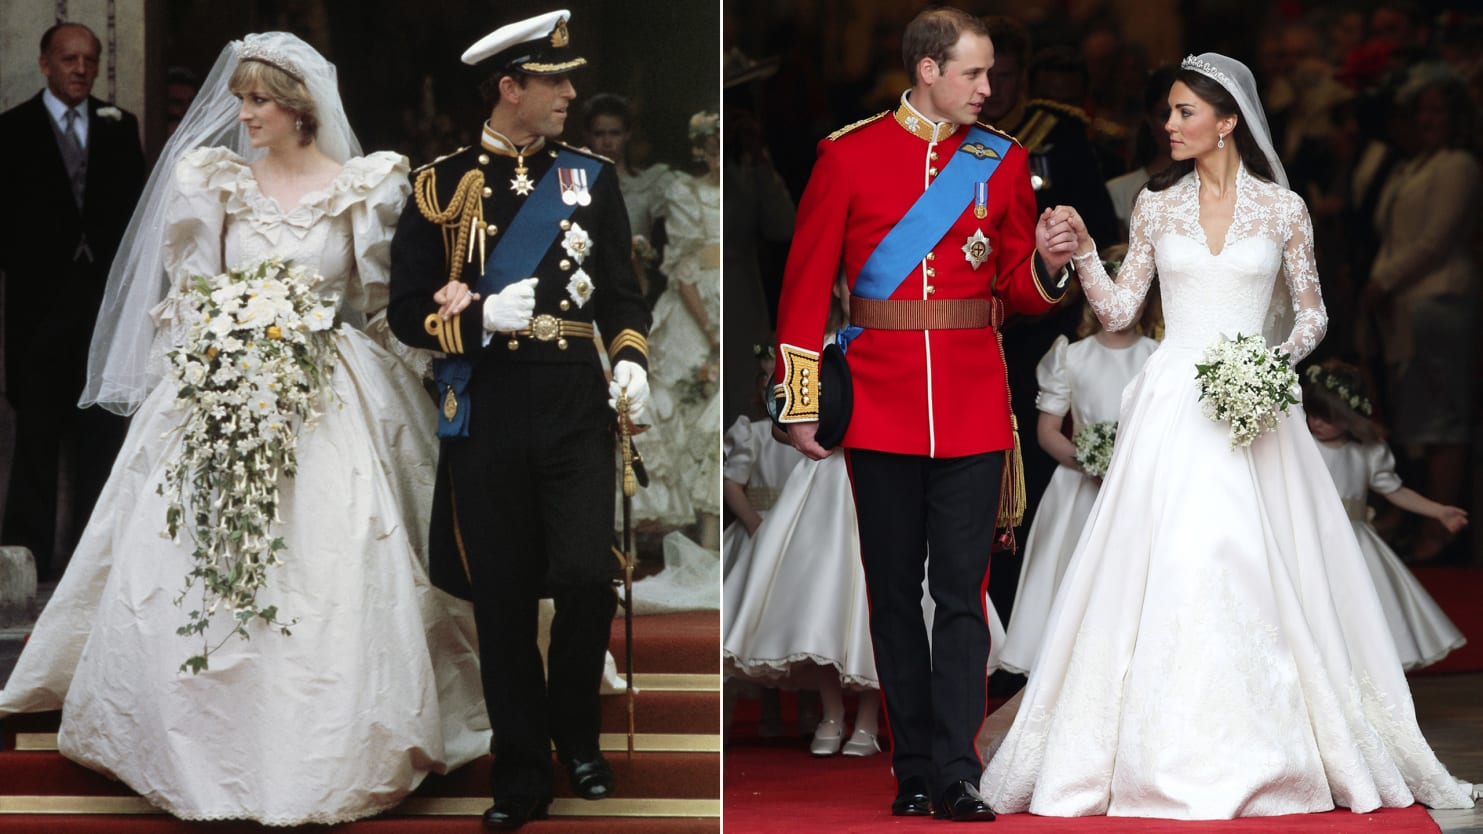 In This Composite Image A Comparison Has Been Made Between The Royal Wedding Cathedral Departure Images Of Prince Charles Wales And Lady Diana